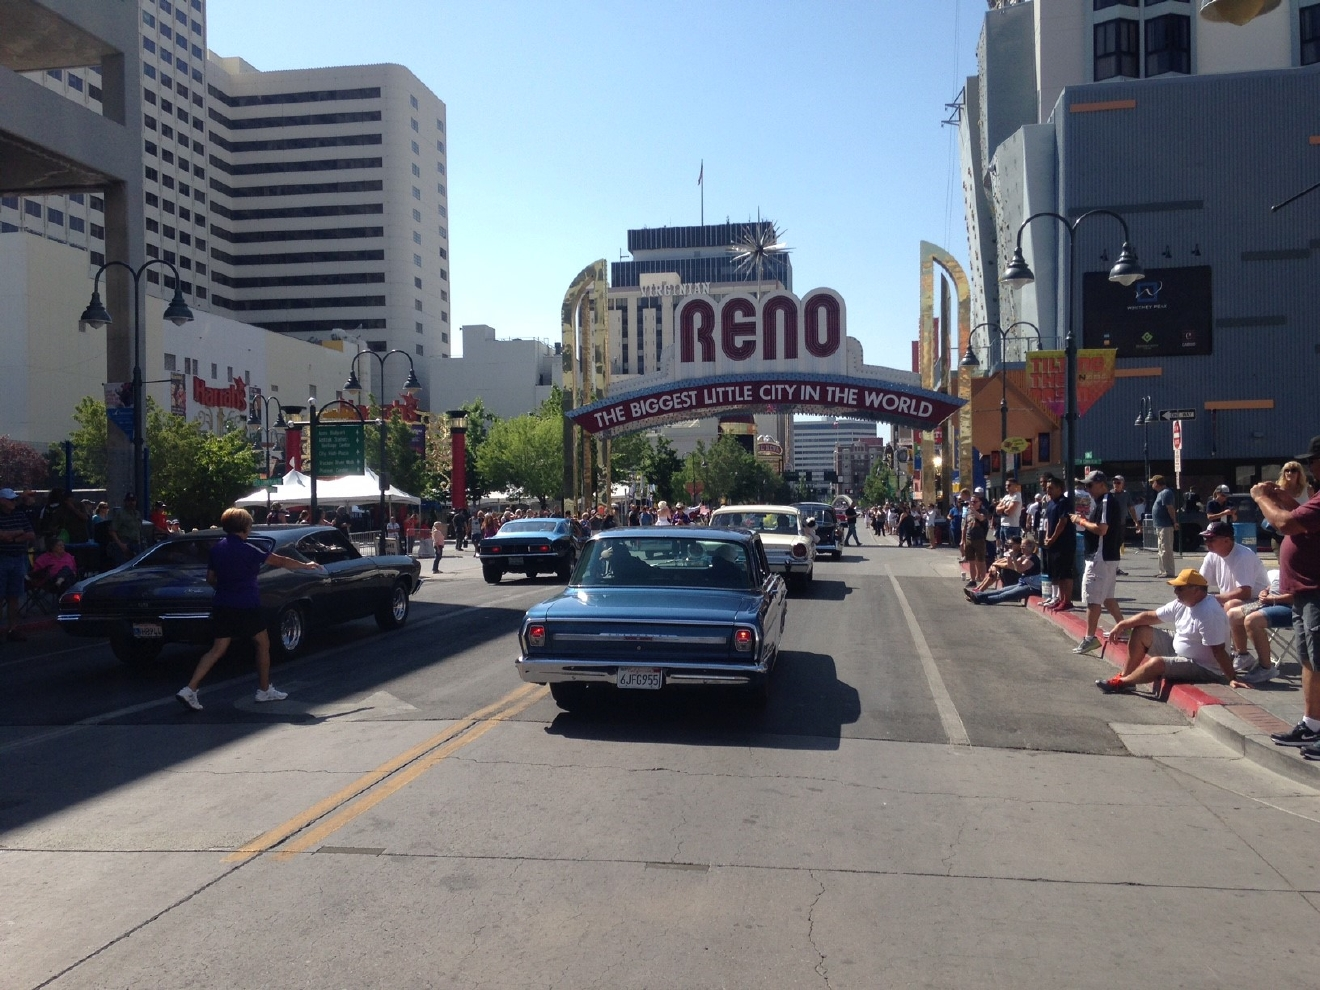 Hot August Nights parade cruises through downtown Reno - Aug. 7, 2016 (Sinclair Broadcast Group)